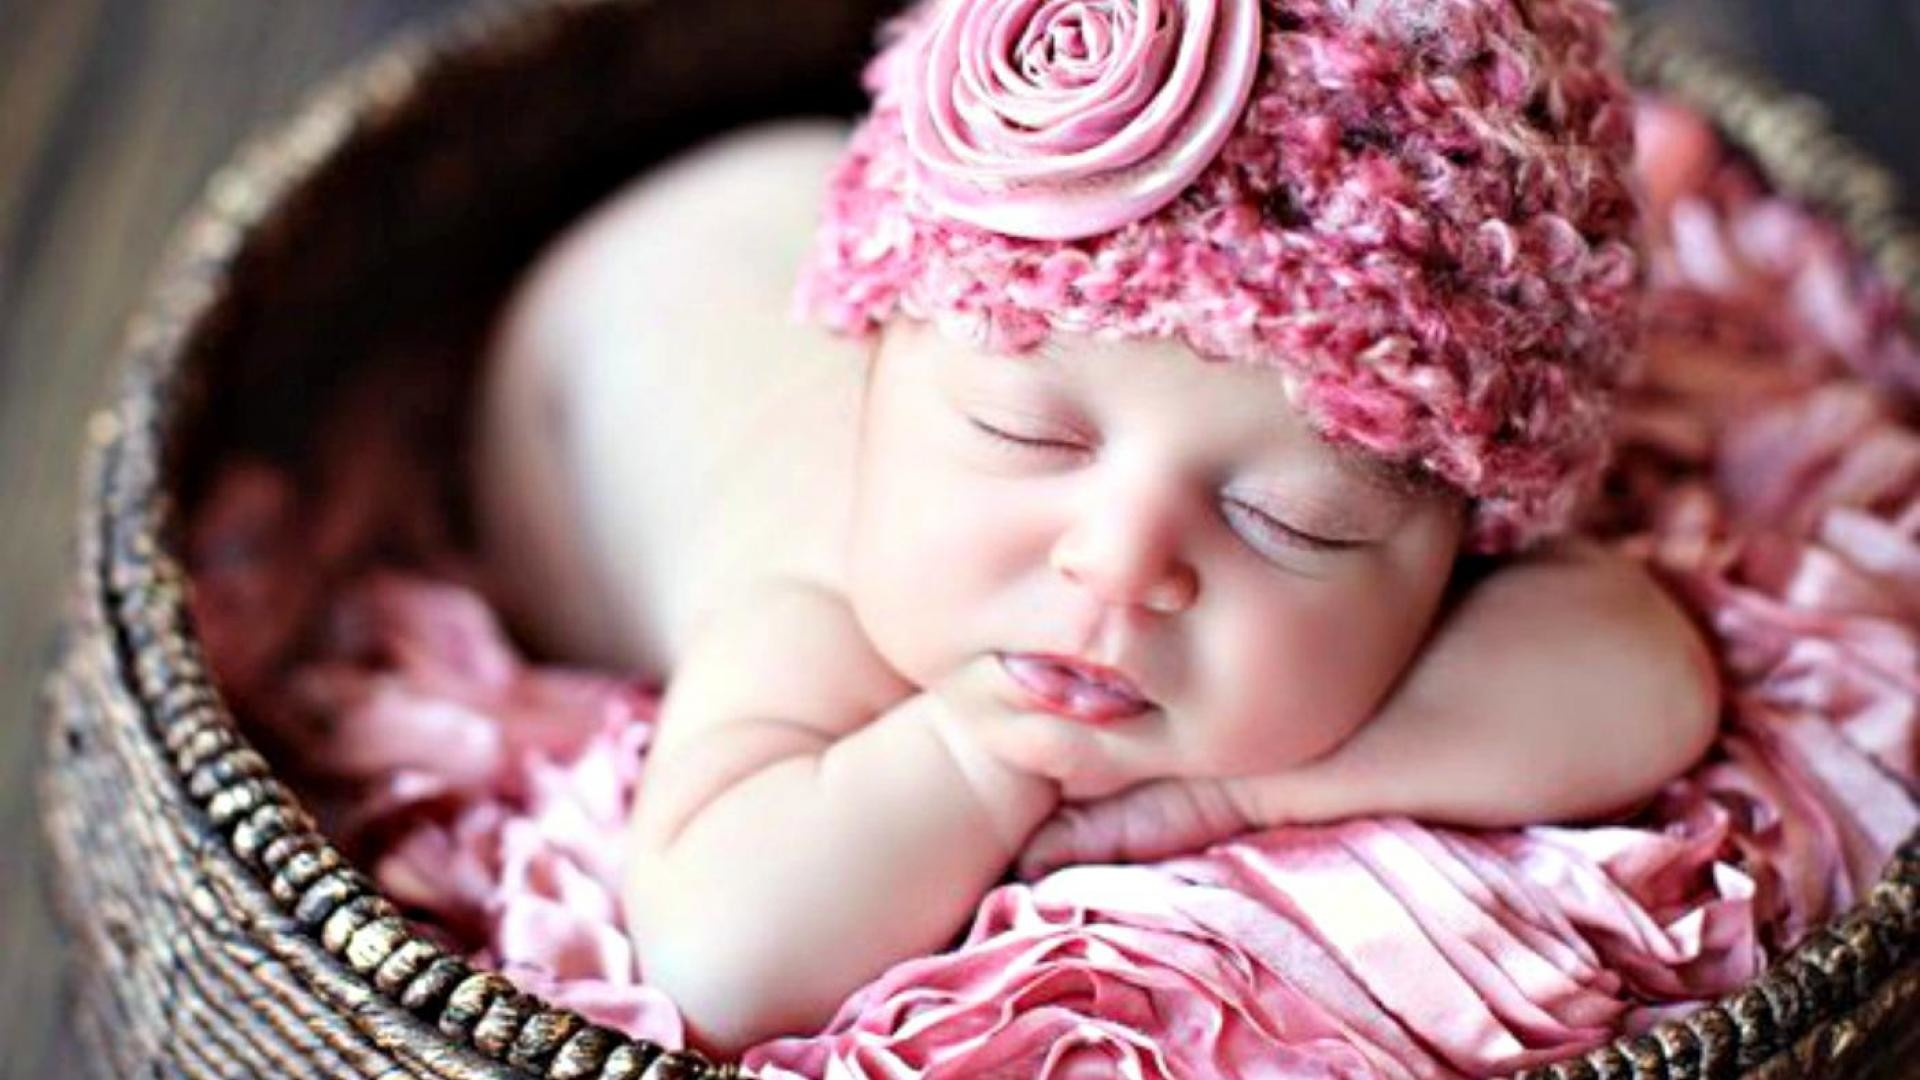 Beautiful Babies Wallpapers: Cute Baby Pics Wallpapers (64+ Images